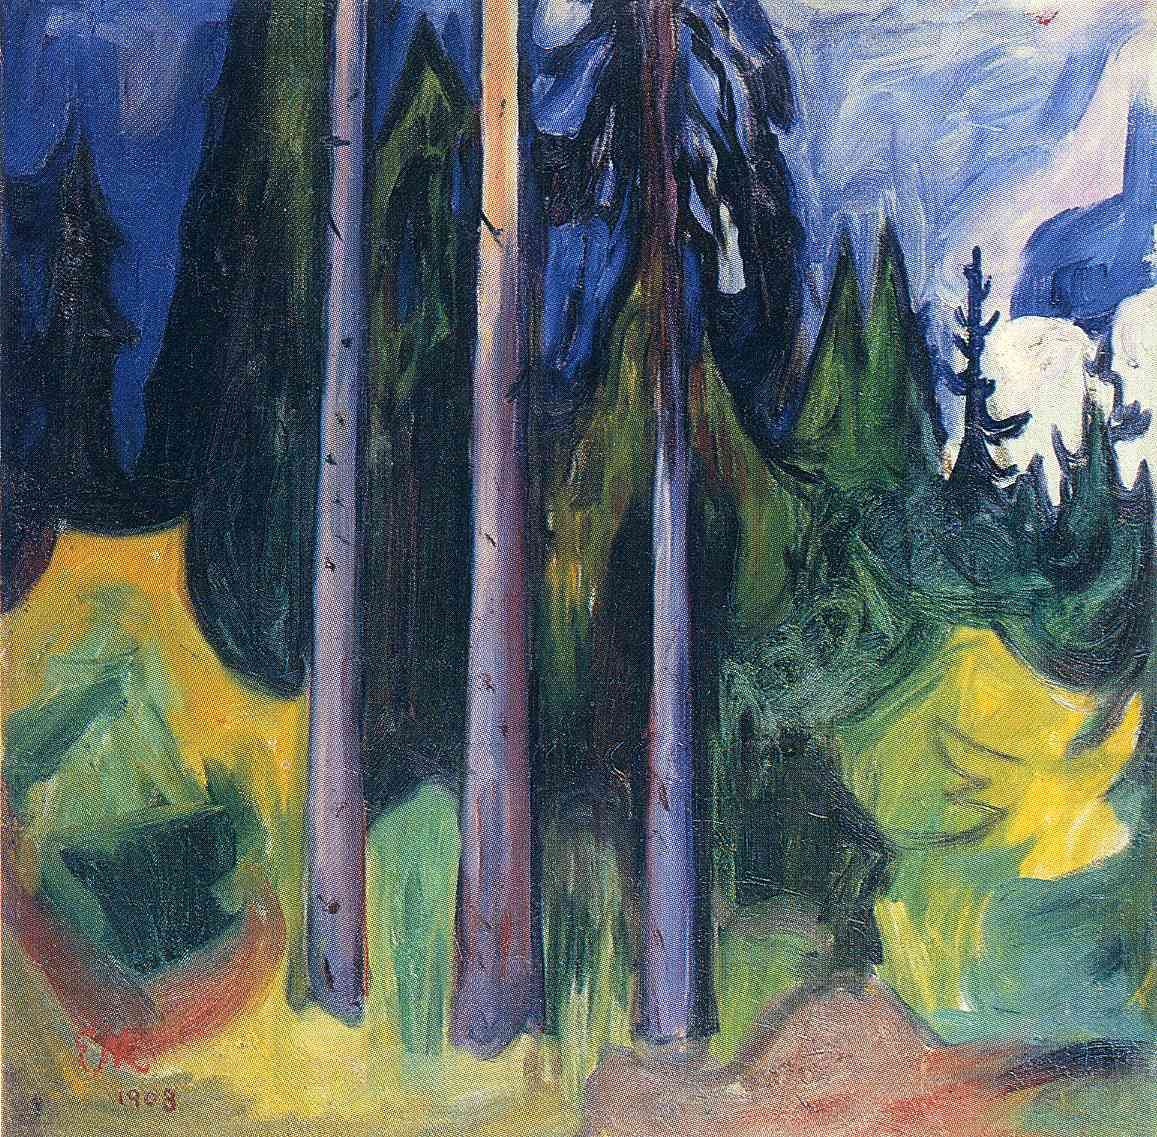 """Edvard Munch (1863-1944), Loten. Norwegian painter and printmaker. """"Forest"""" (1903). Style: Expressionist landscape. Oil on canvas. 82.5x81.5cm. The Munch Museum."""